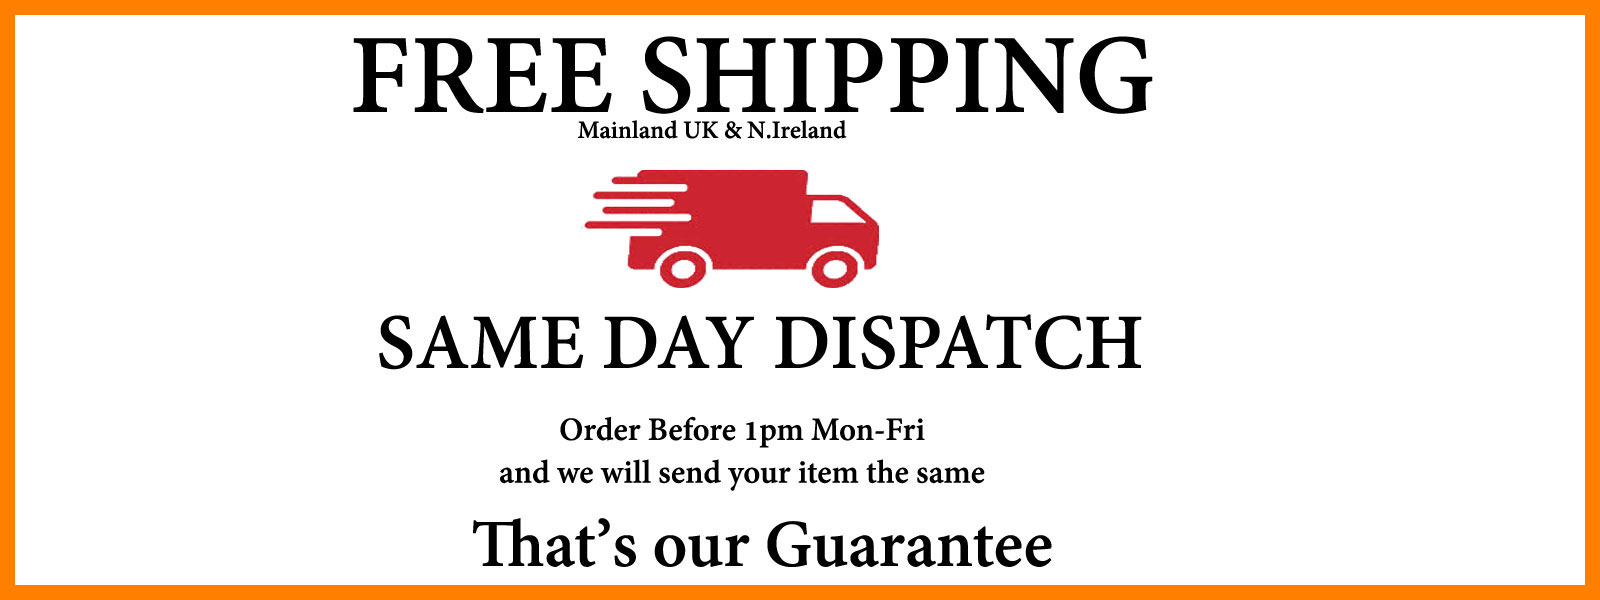 same-day-dispatch-delivery-promise-free-shipping.jpg